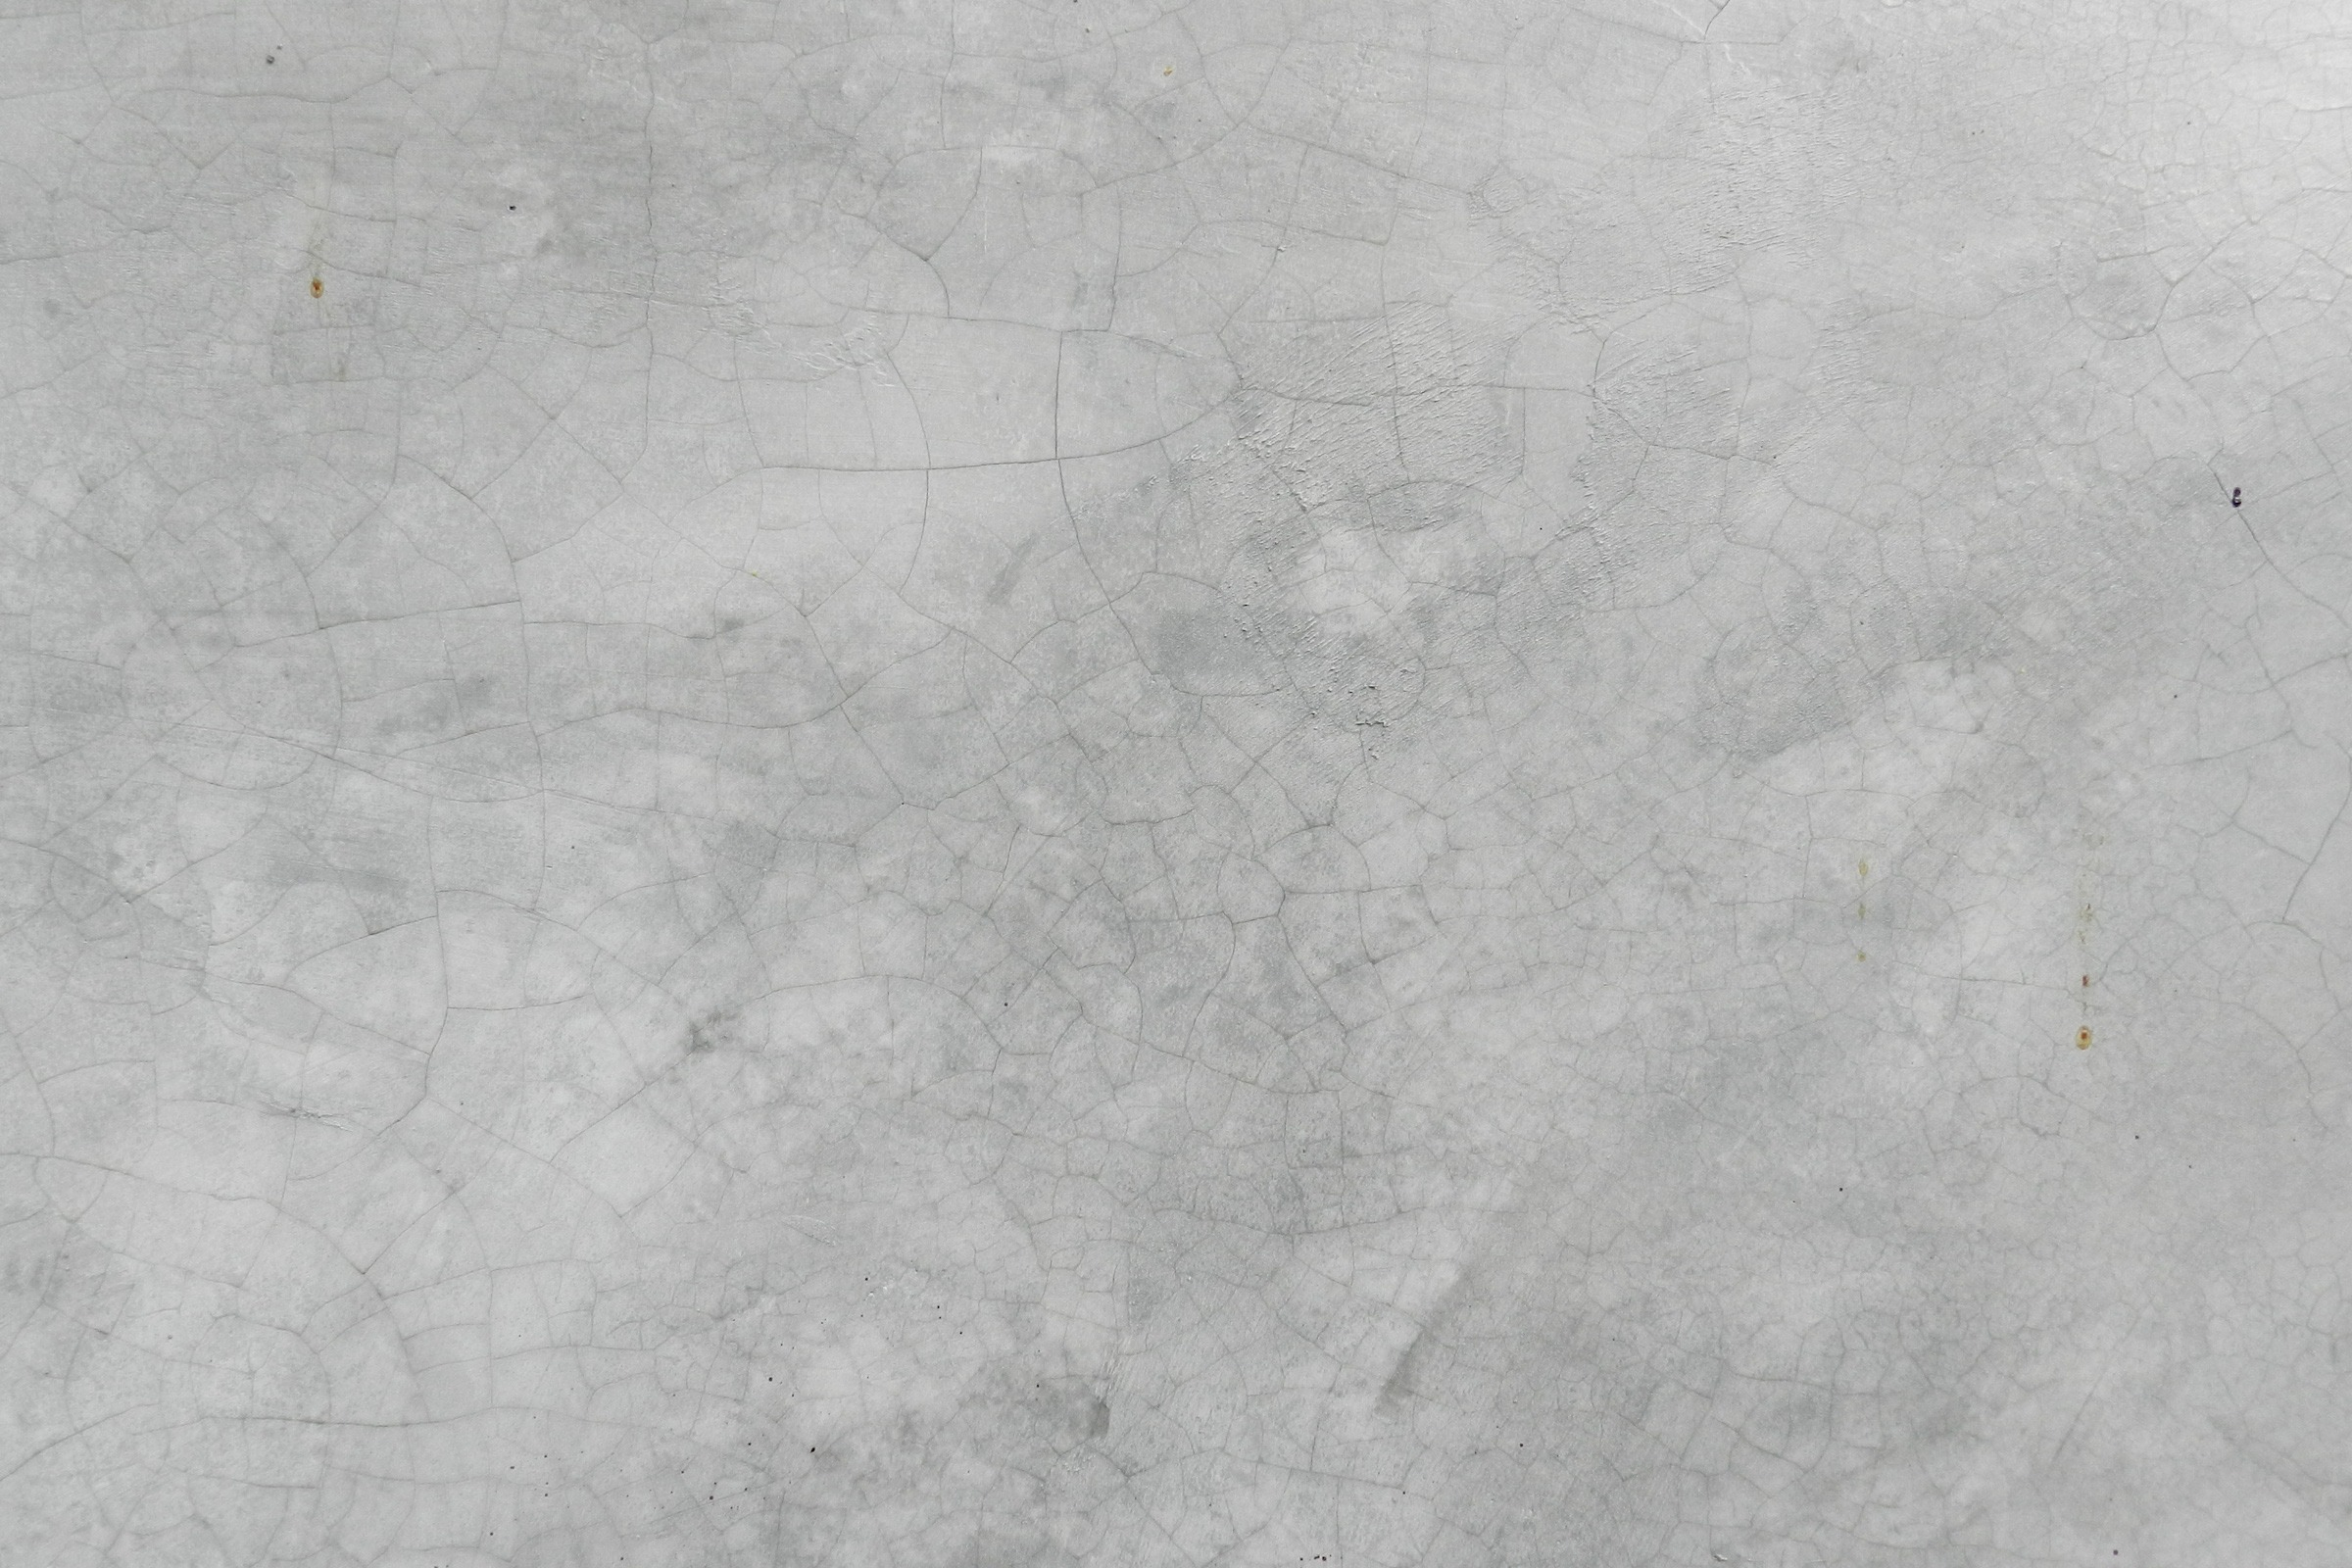 Abstract light gray concrete wall free image